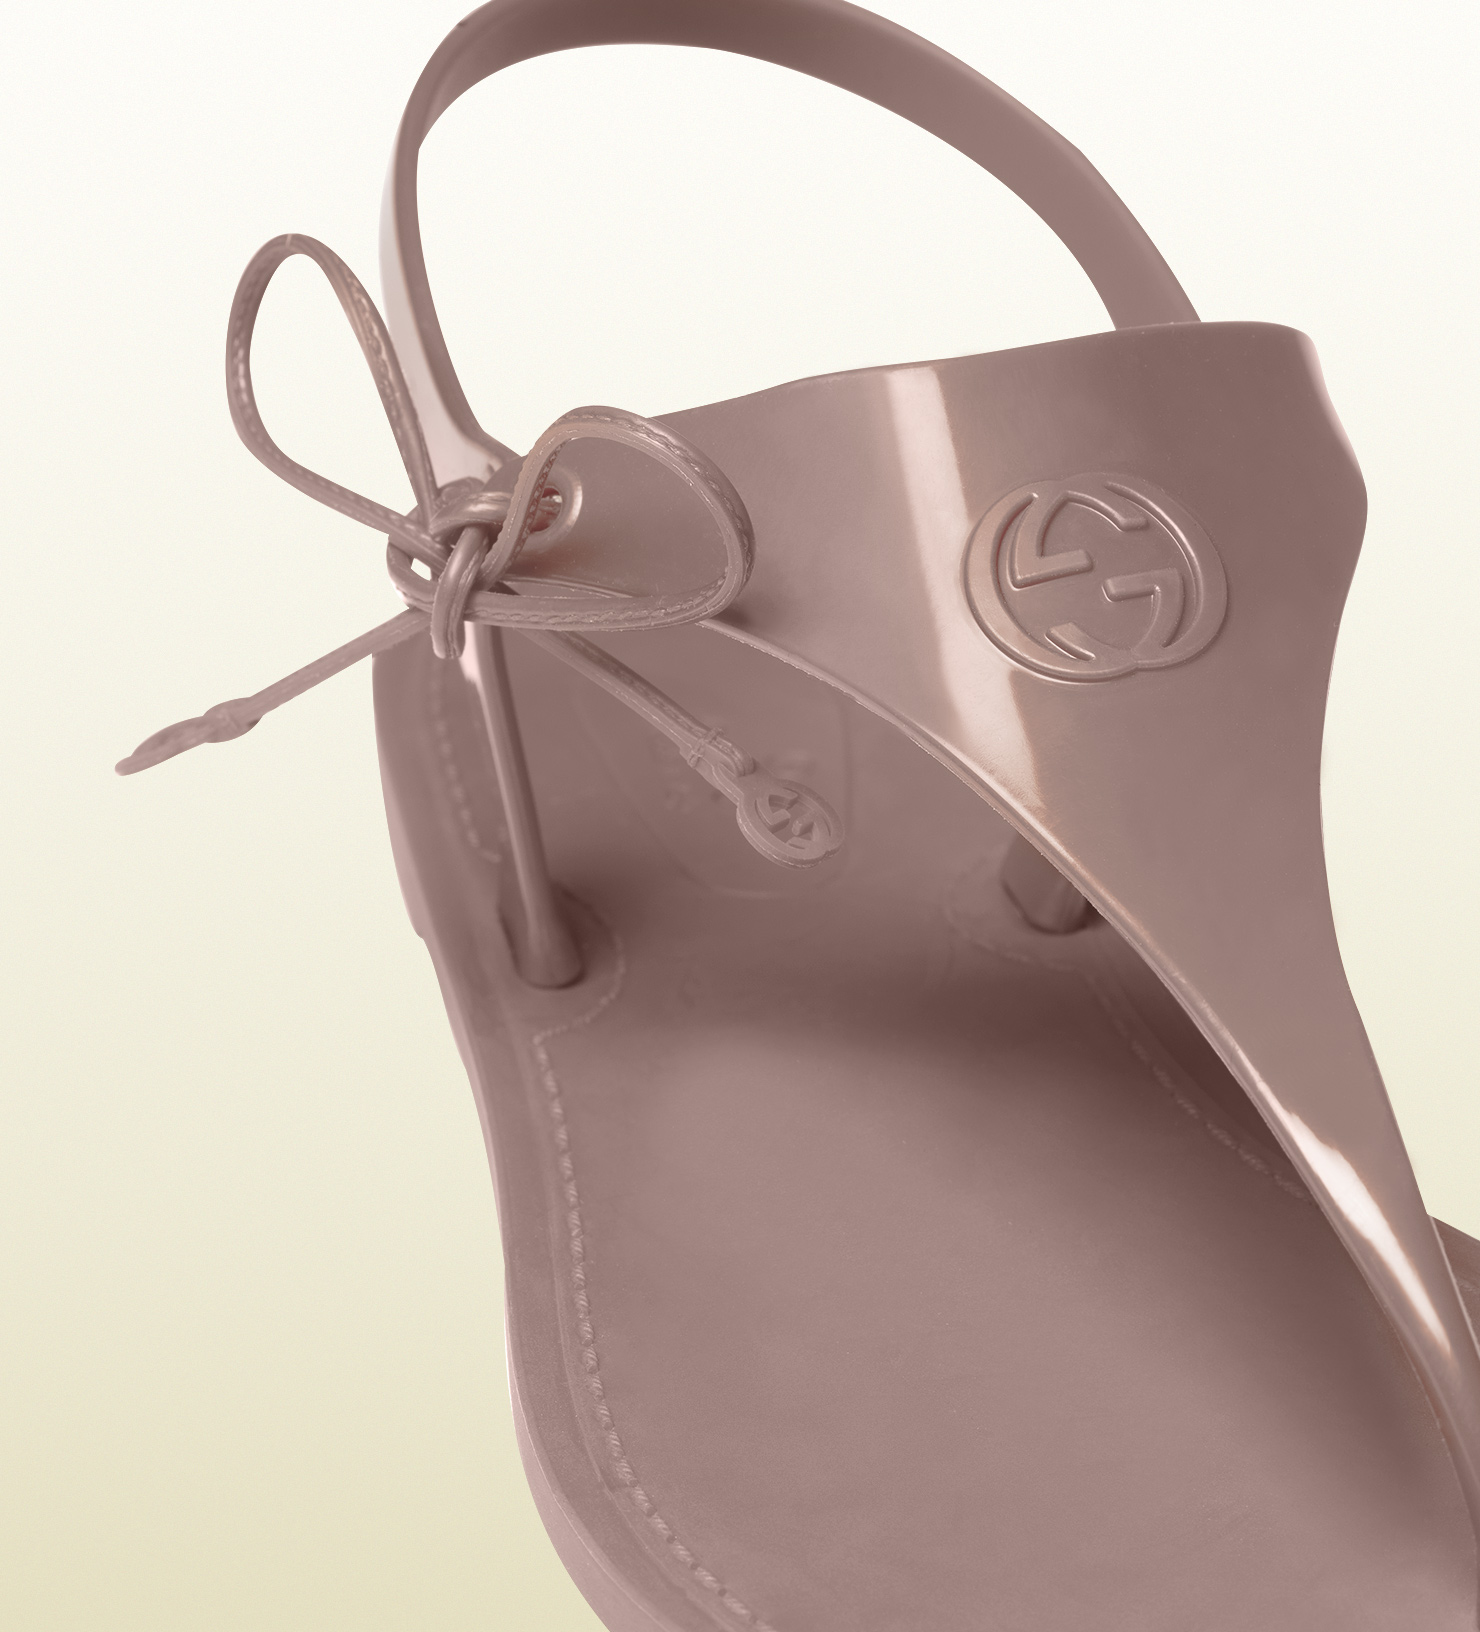 aa4fcb588 Gucci Katina Light Pink Rubber Thong Sandal in Gray - Lyst